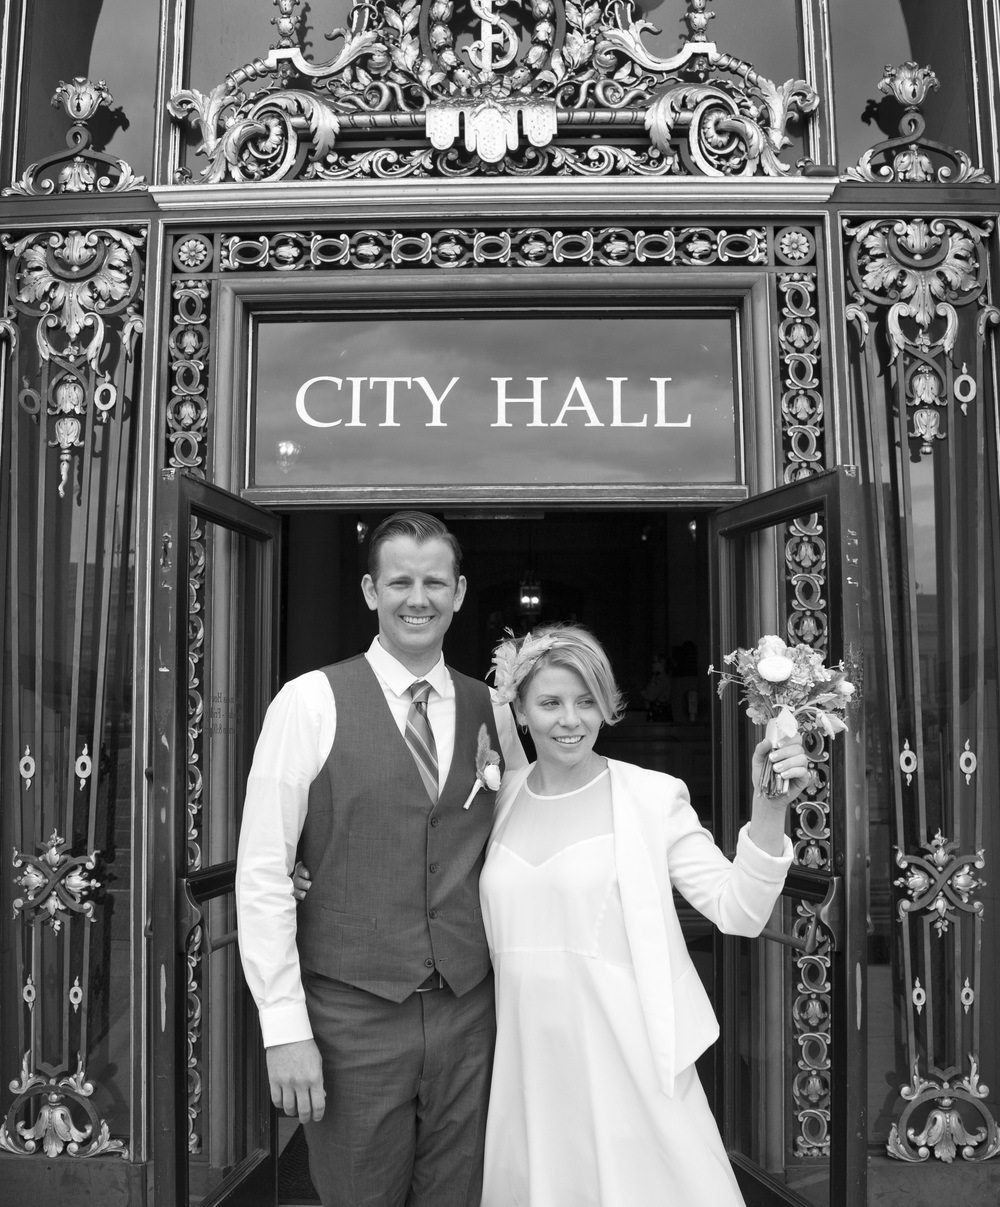 C&J - City Hall doorway2 - B&W.jpg